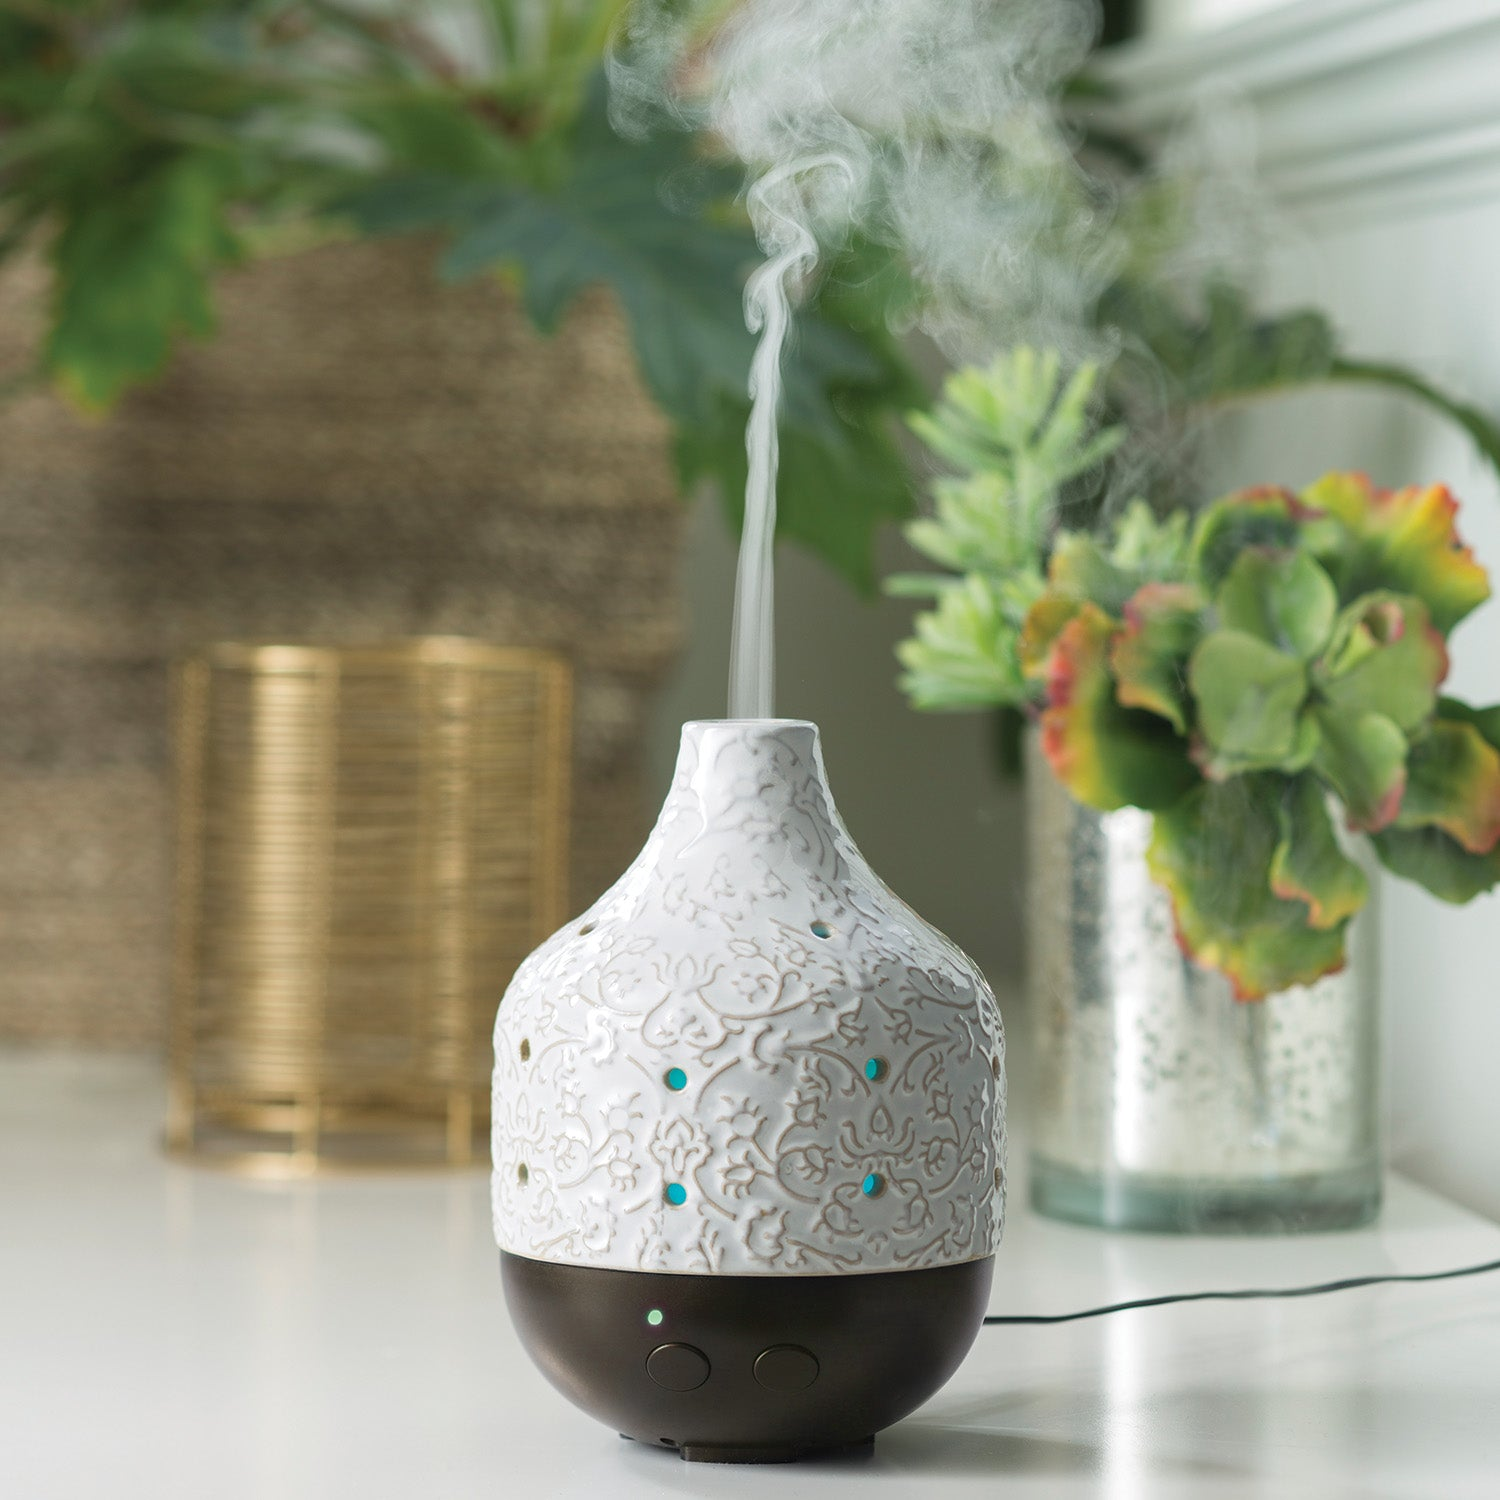 Botanical Ultrasonic Diffuser